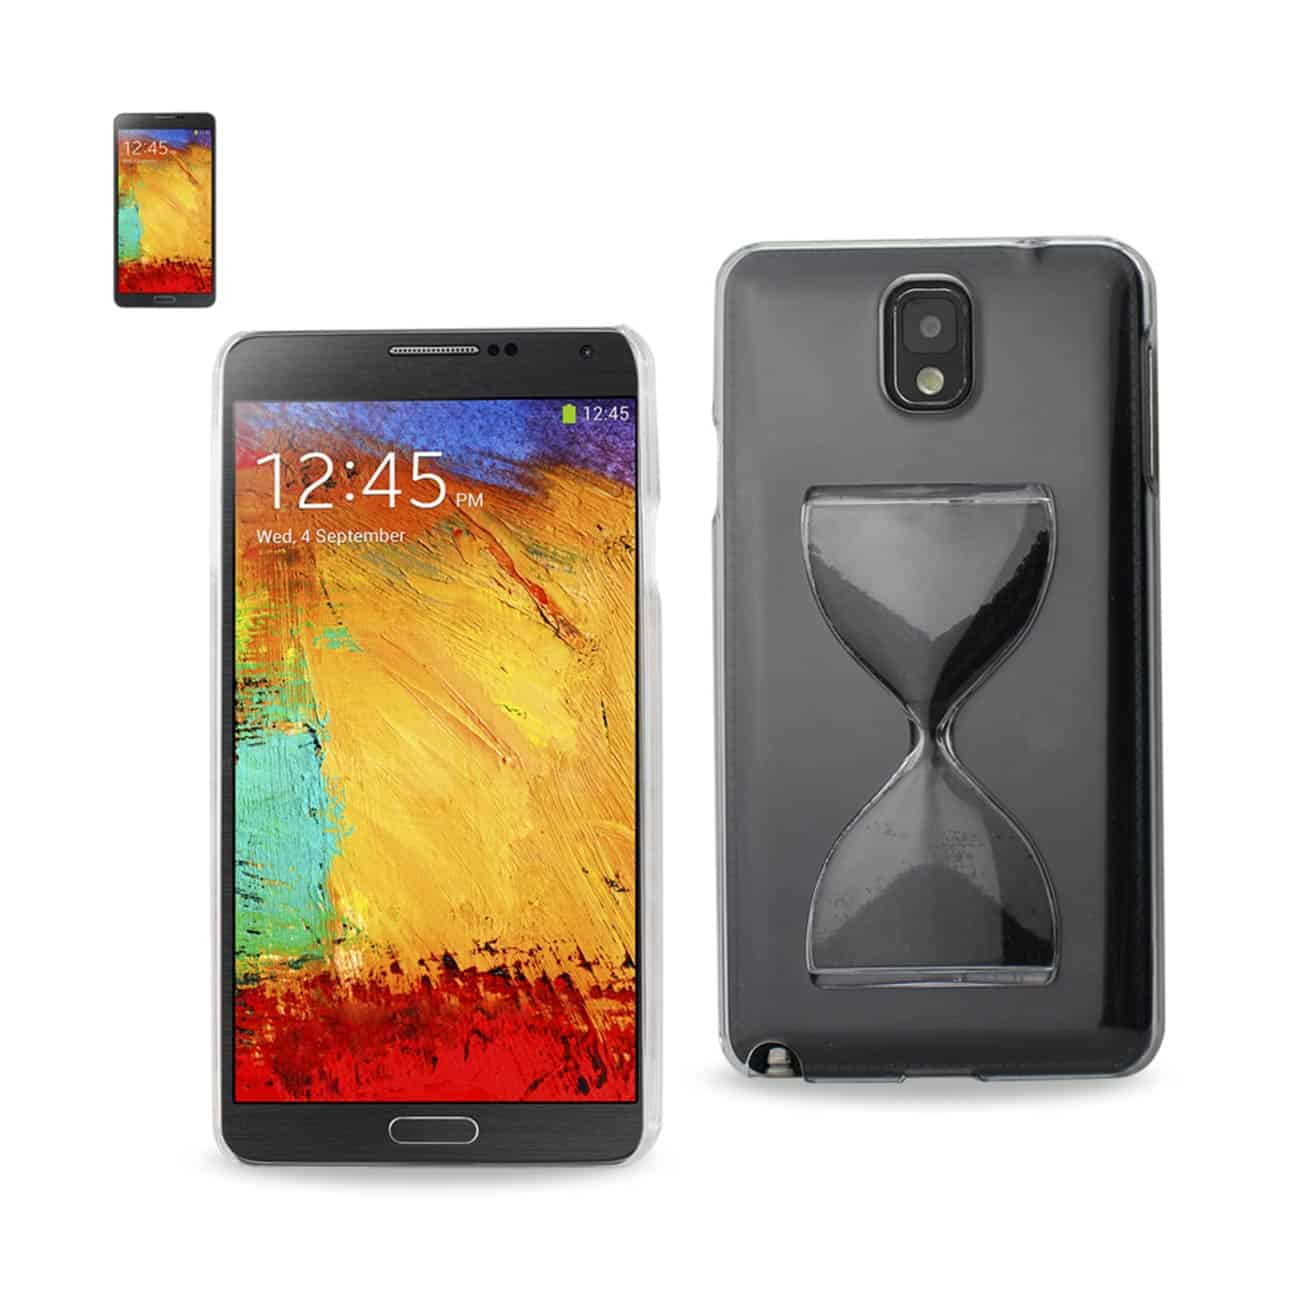 SAMSUNG GALAXY NOTE 3 3D SAND CLOCK CLEAR CASE IN BLACK